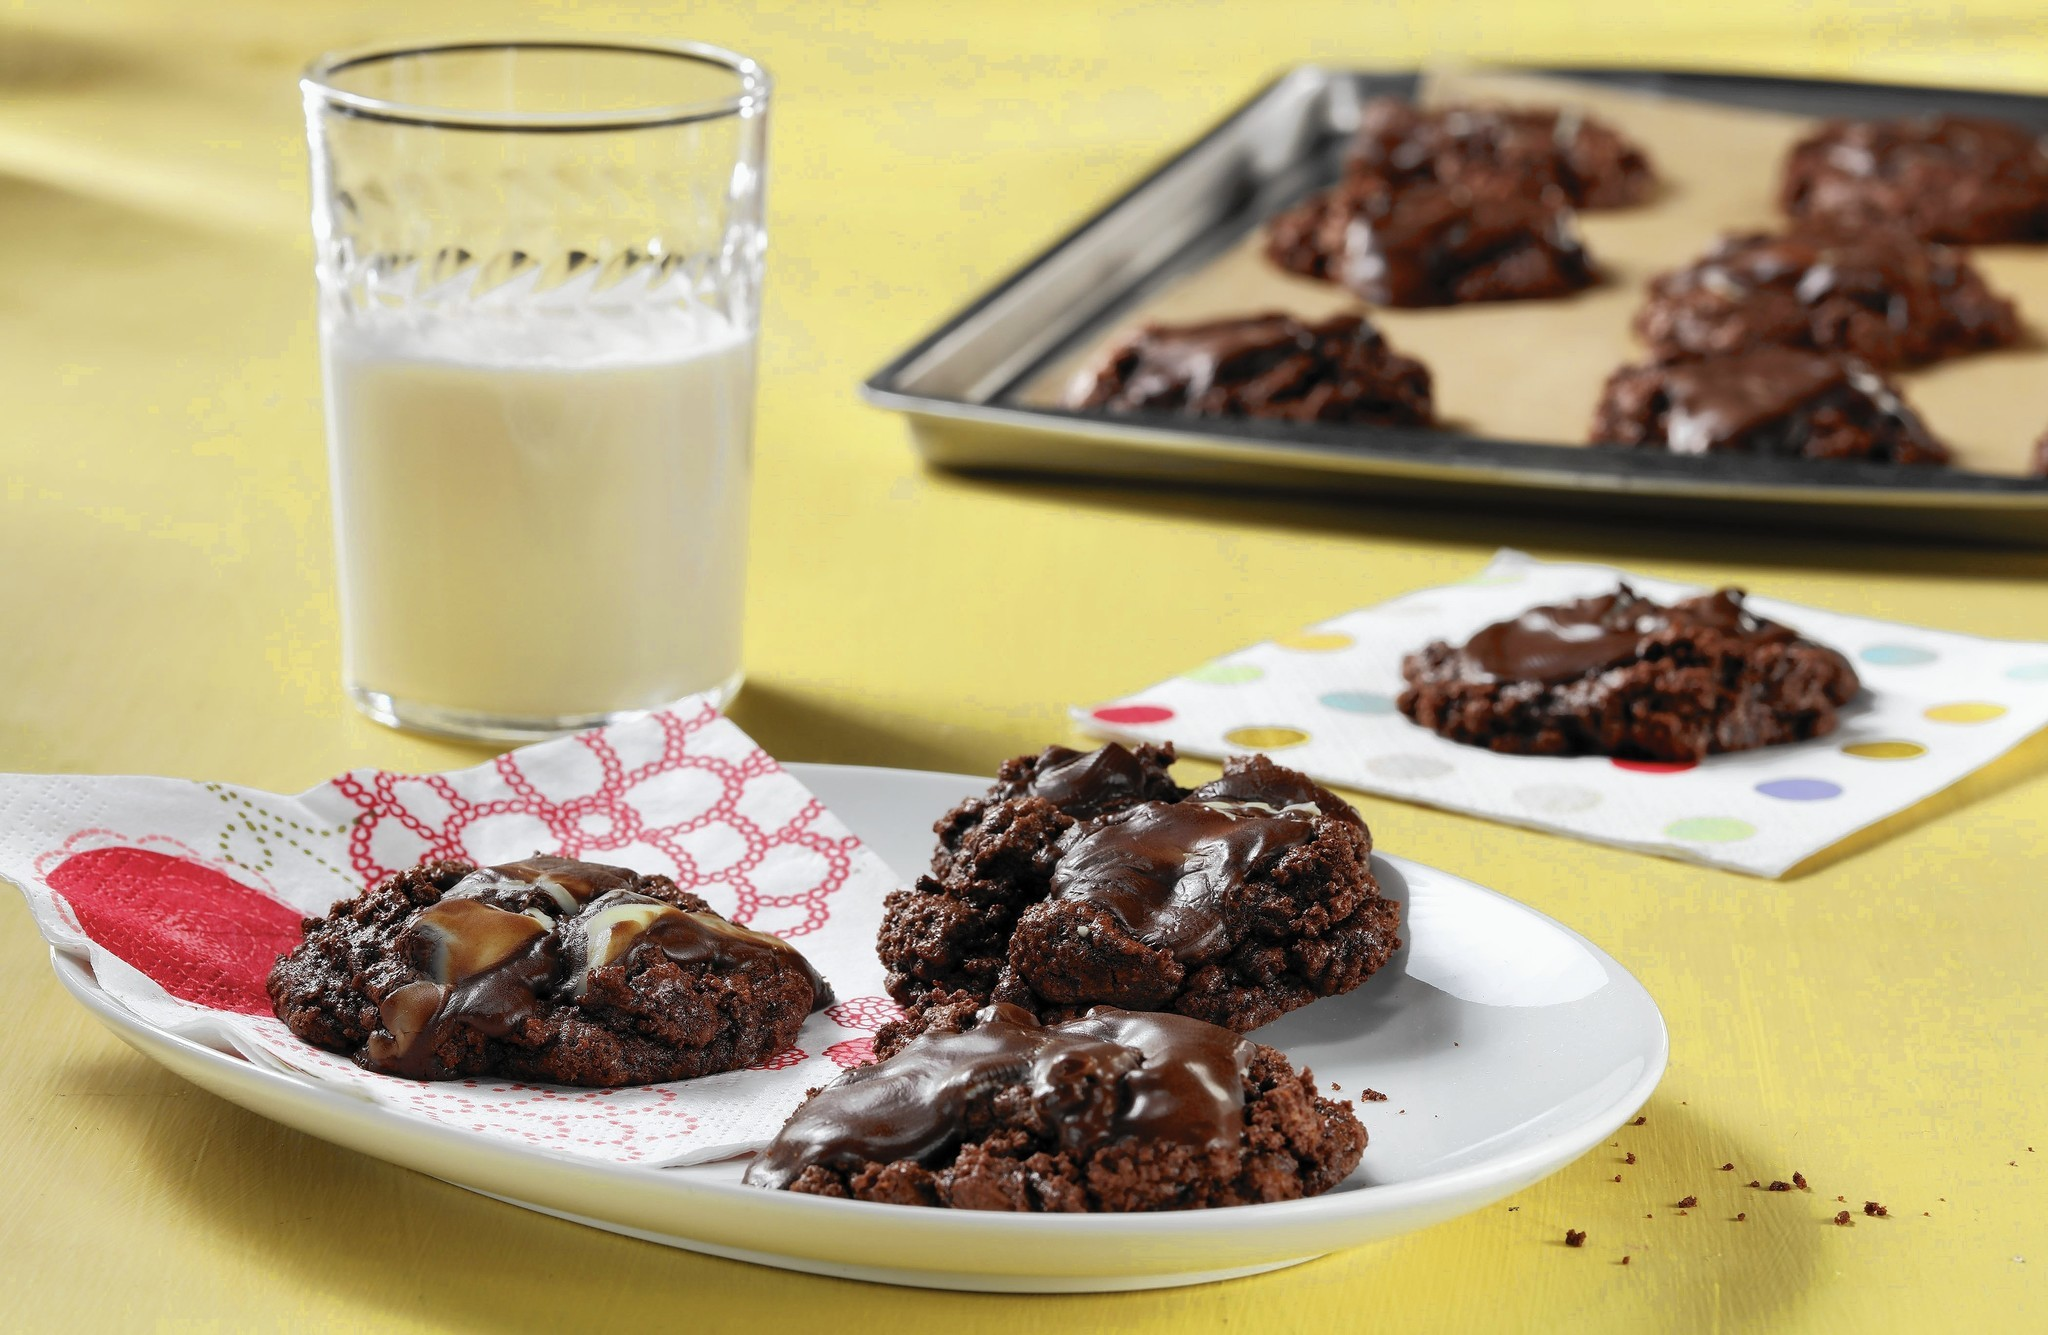 Chocolate mint cookies answer a late-night craving